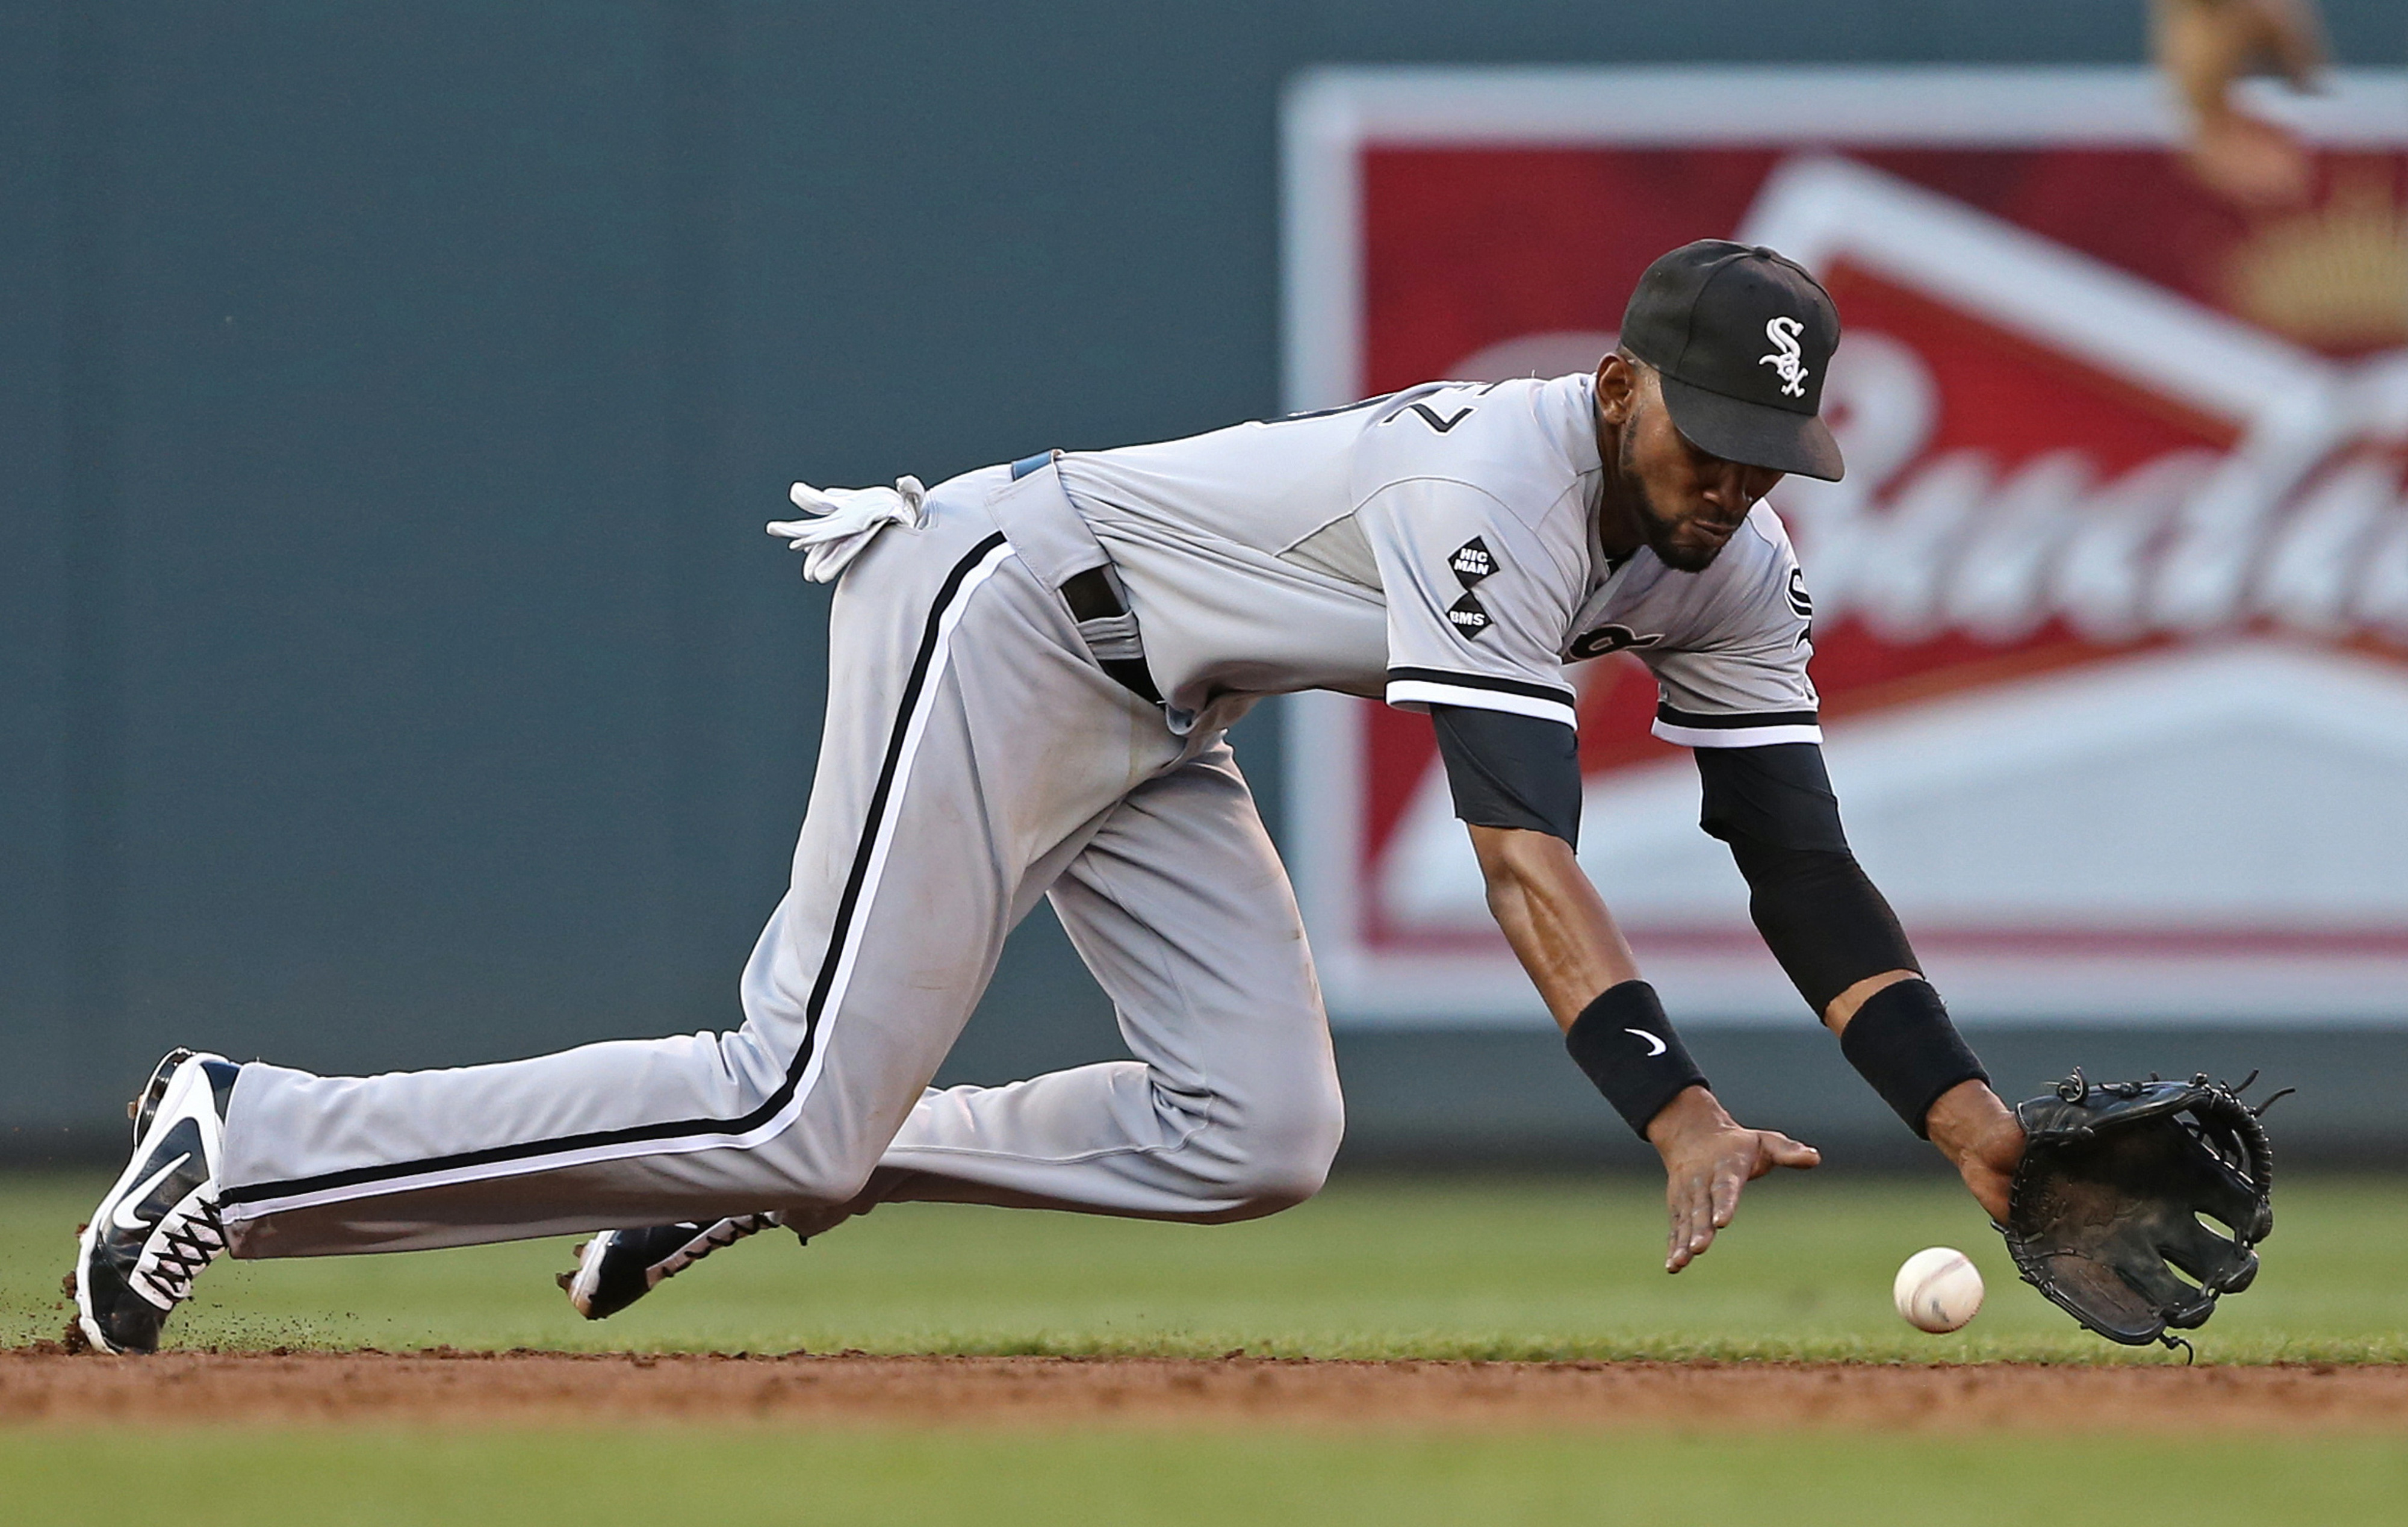 Could this man be the next Tigers shortstop? Probably not.